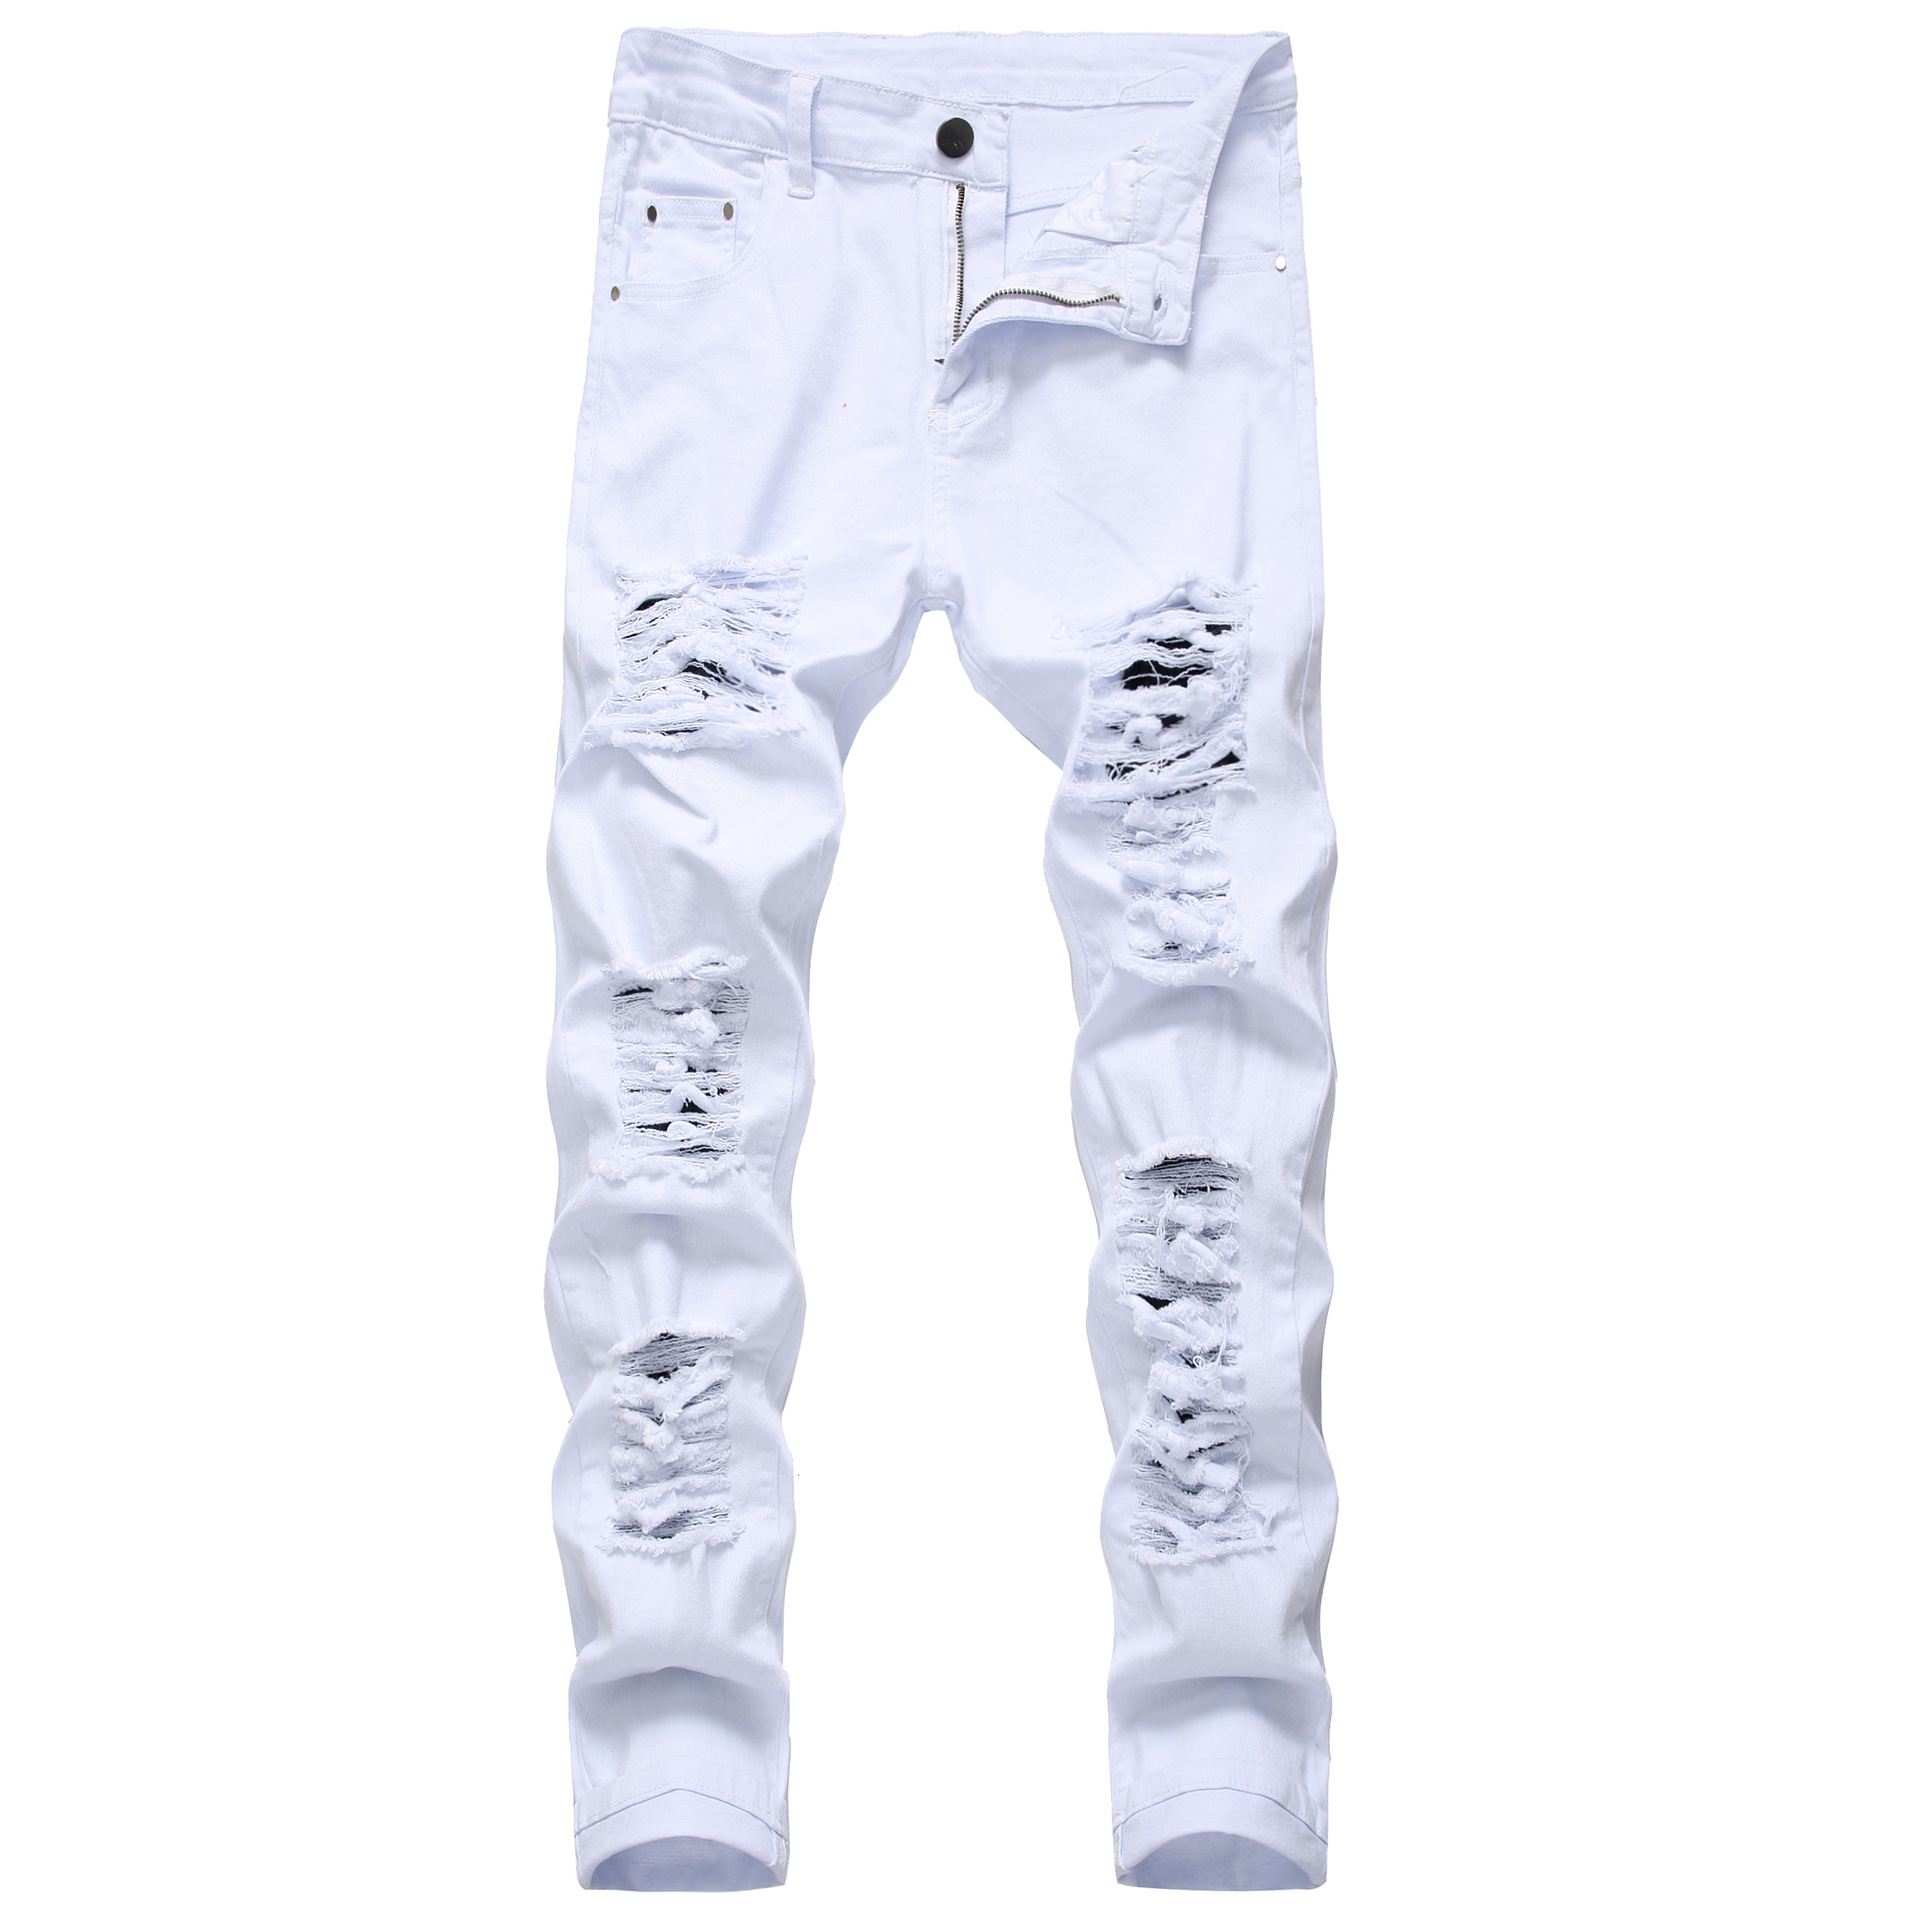 New Arrival Men's Cotton Ripped Hole Jeans Casual Slim Skinny White Jeans men Trousers Fashion Stretch hip hop Denim Pants Male